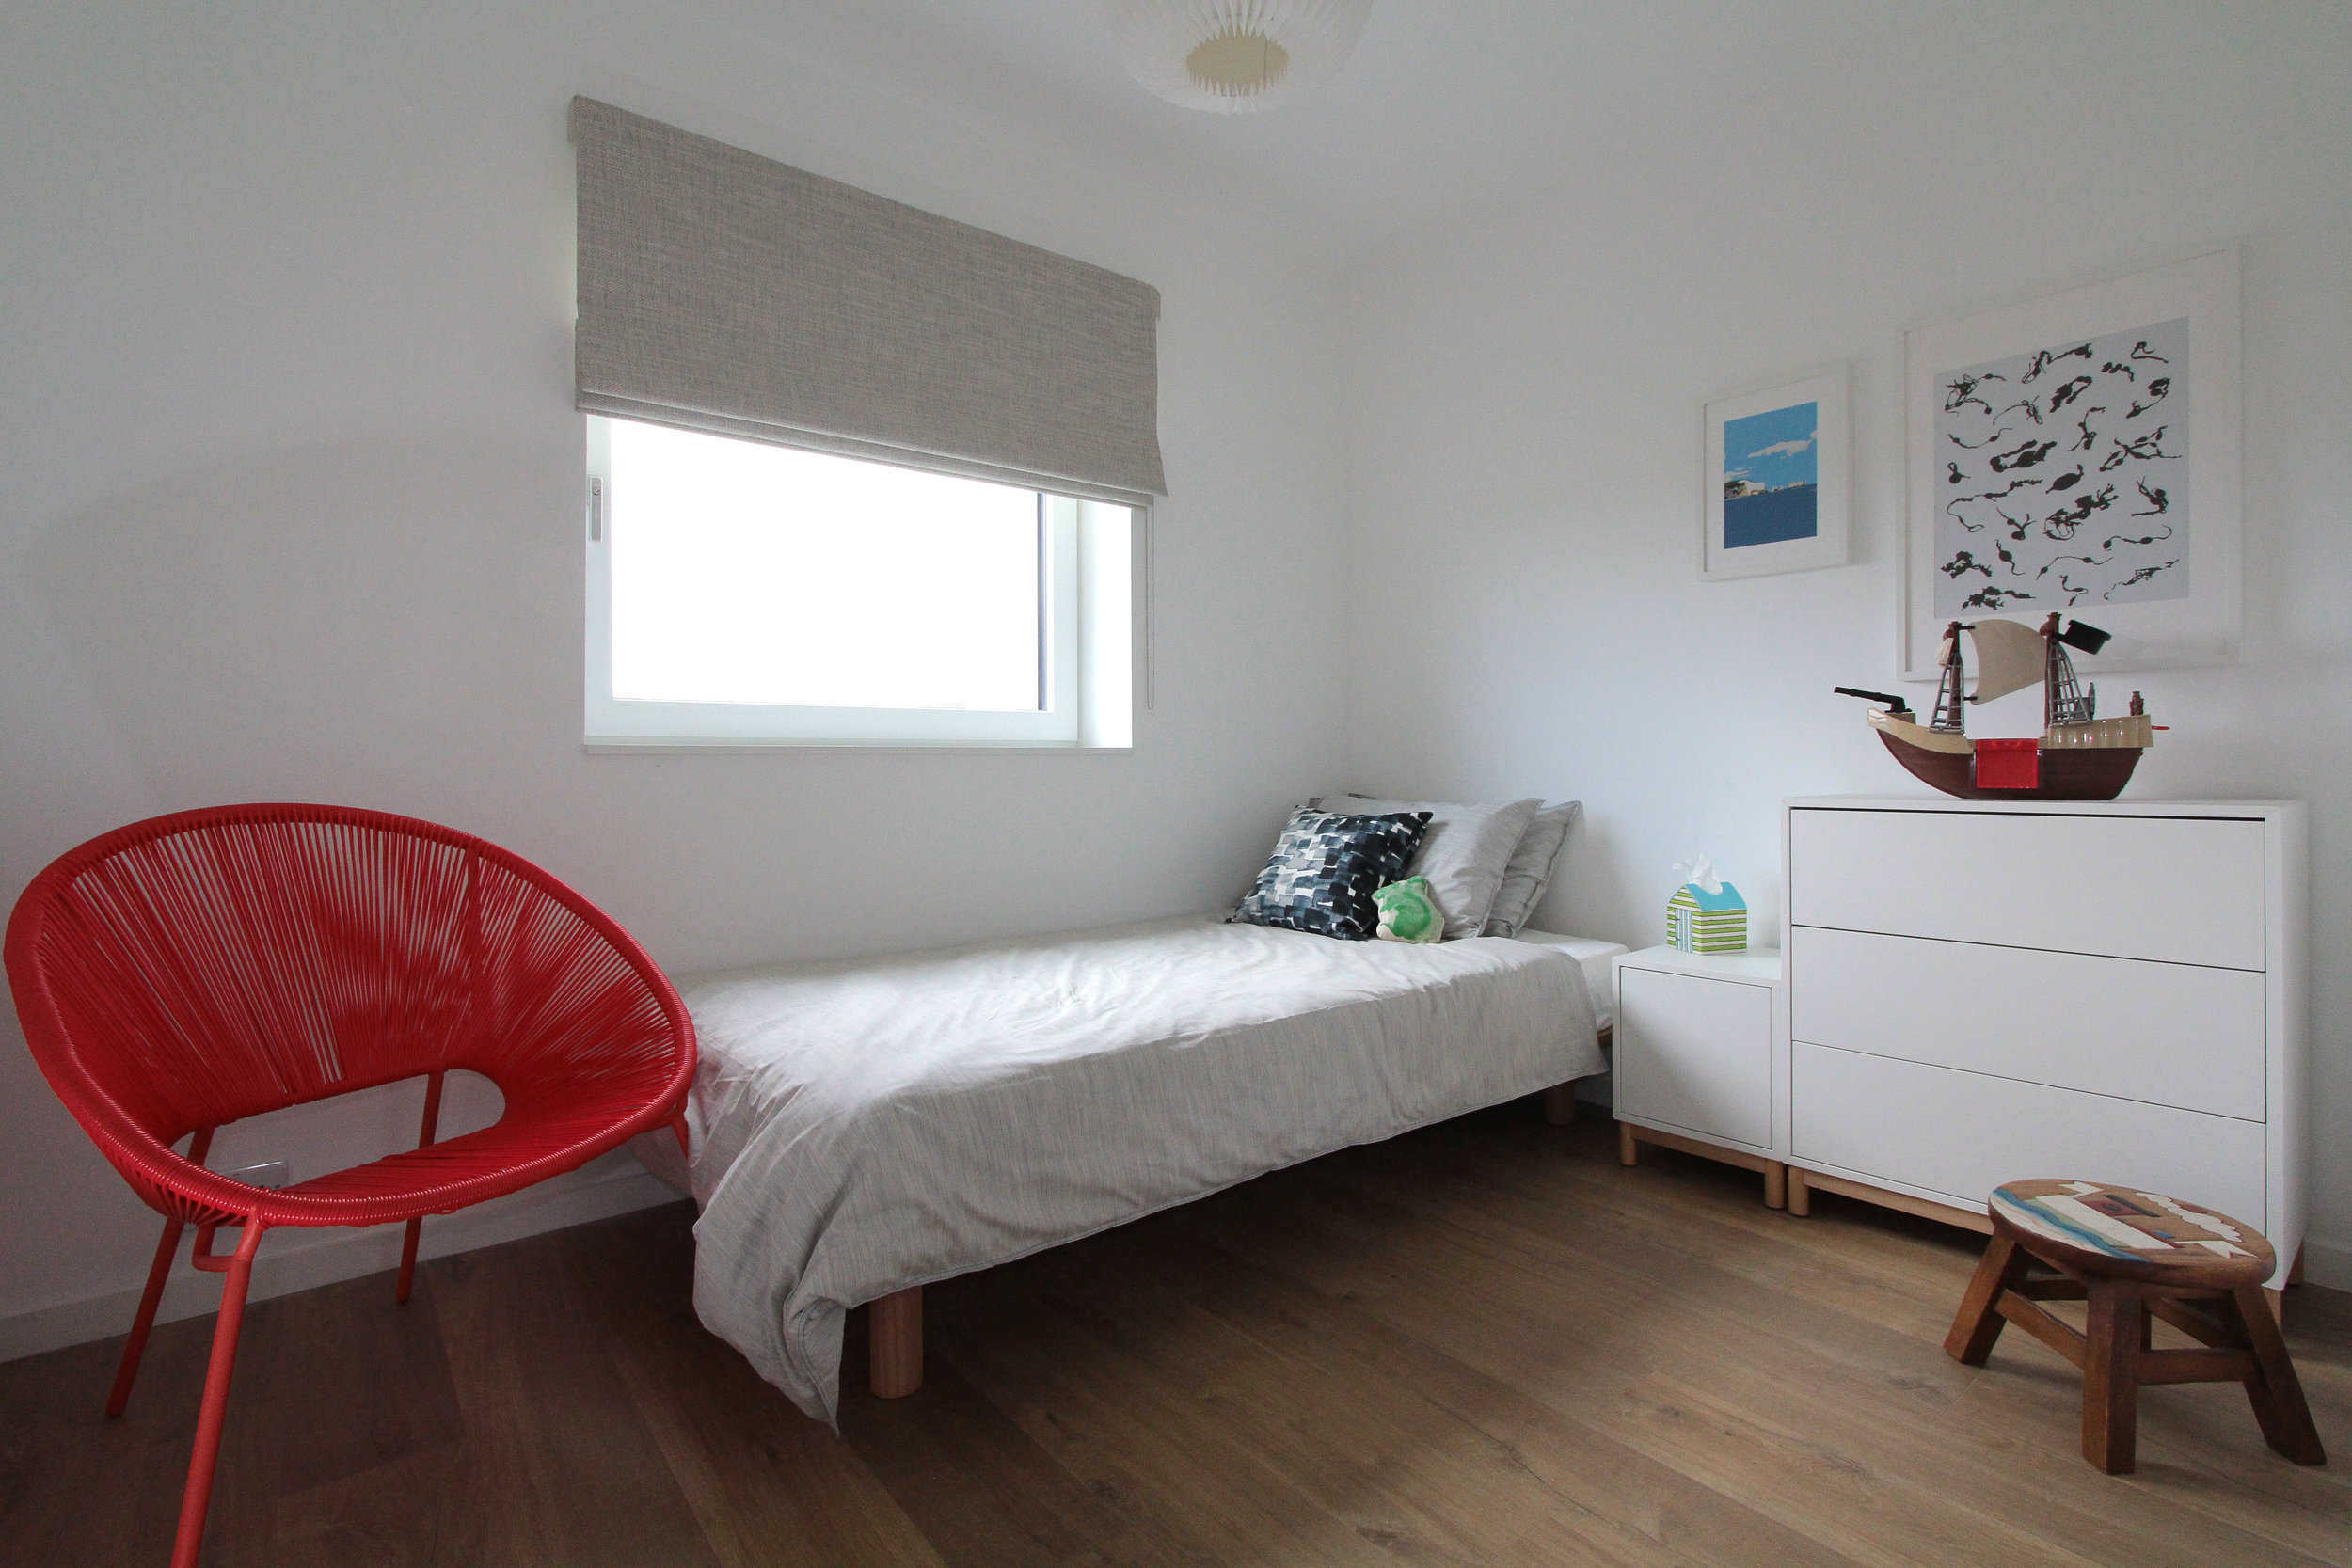 BreakPoint 'Marram' img12 - View of single bedroom 2.jpg